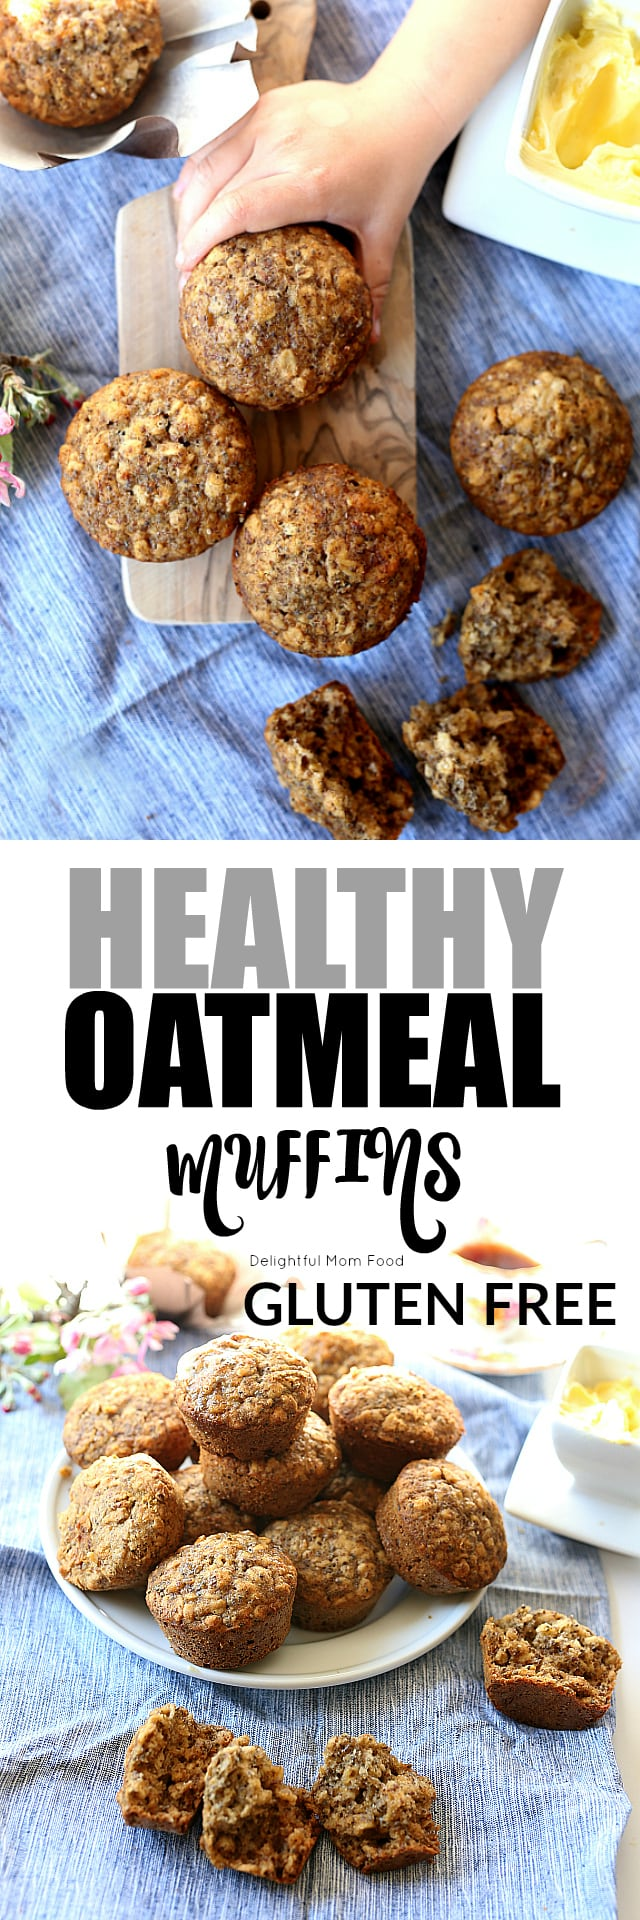 Healthy Gluten Free Oatmeal Muffins! An Oatmeal Bowl baked in a muffin tin! #healthy #oatmeal #chiaseed #glutenfree #muffins | delightfulmomfood.com